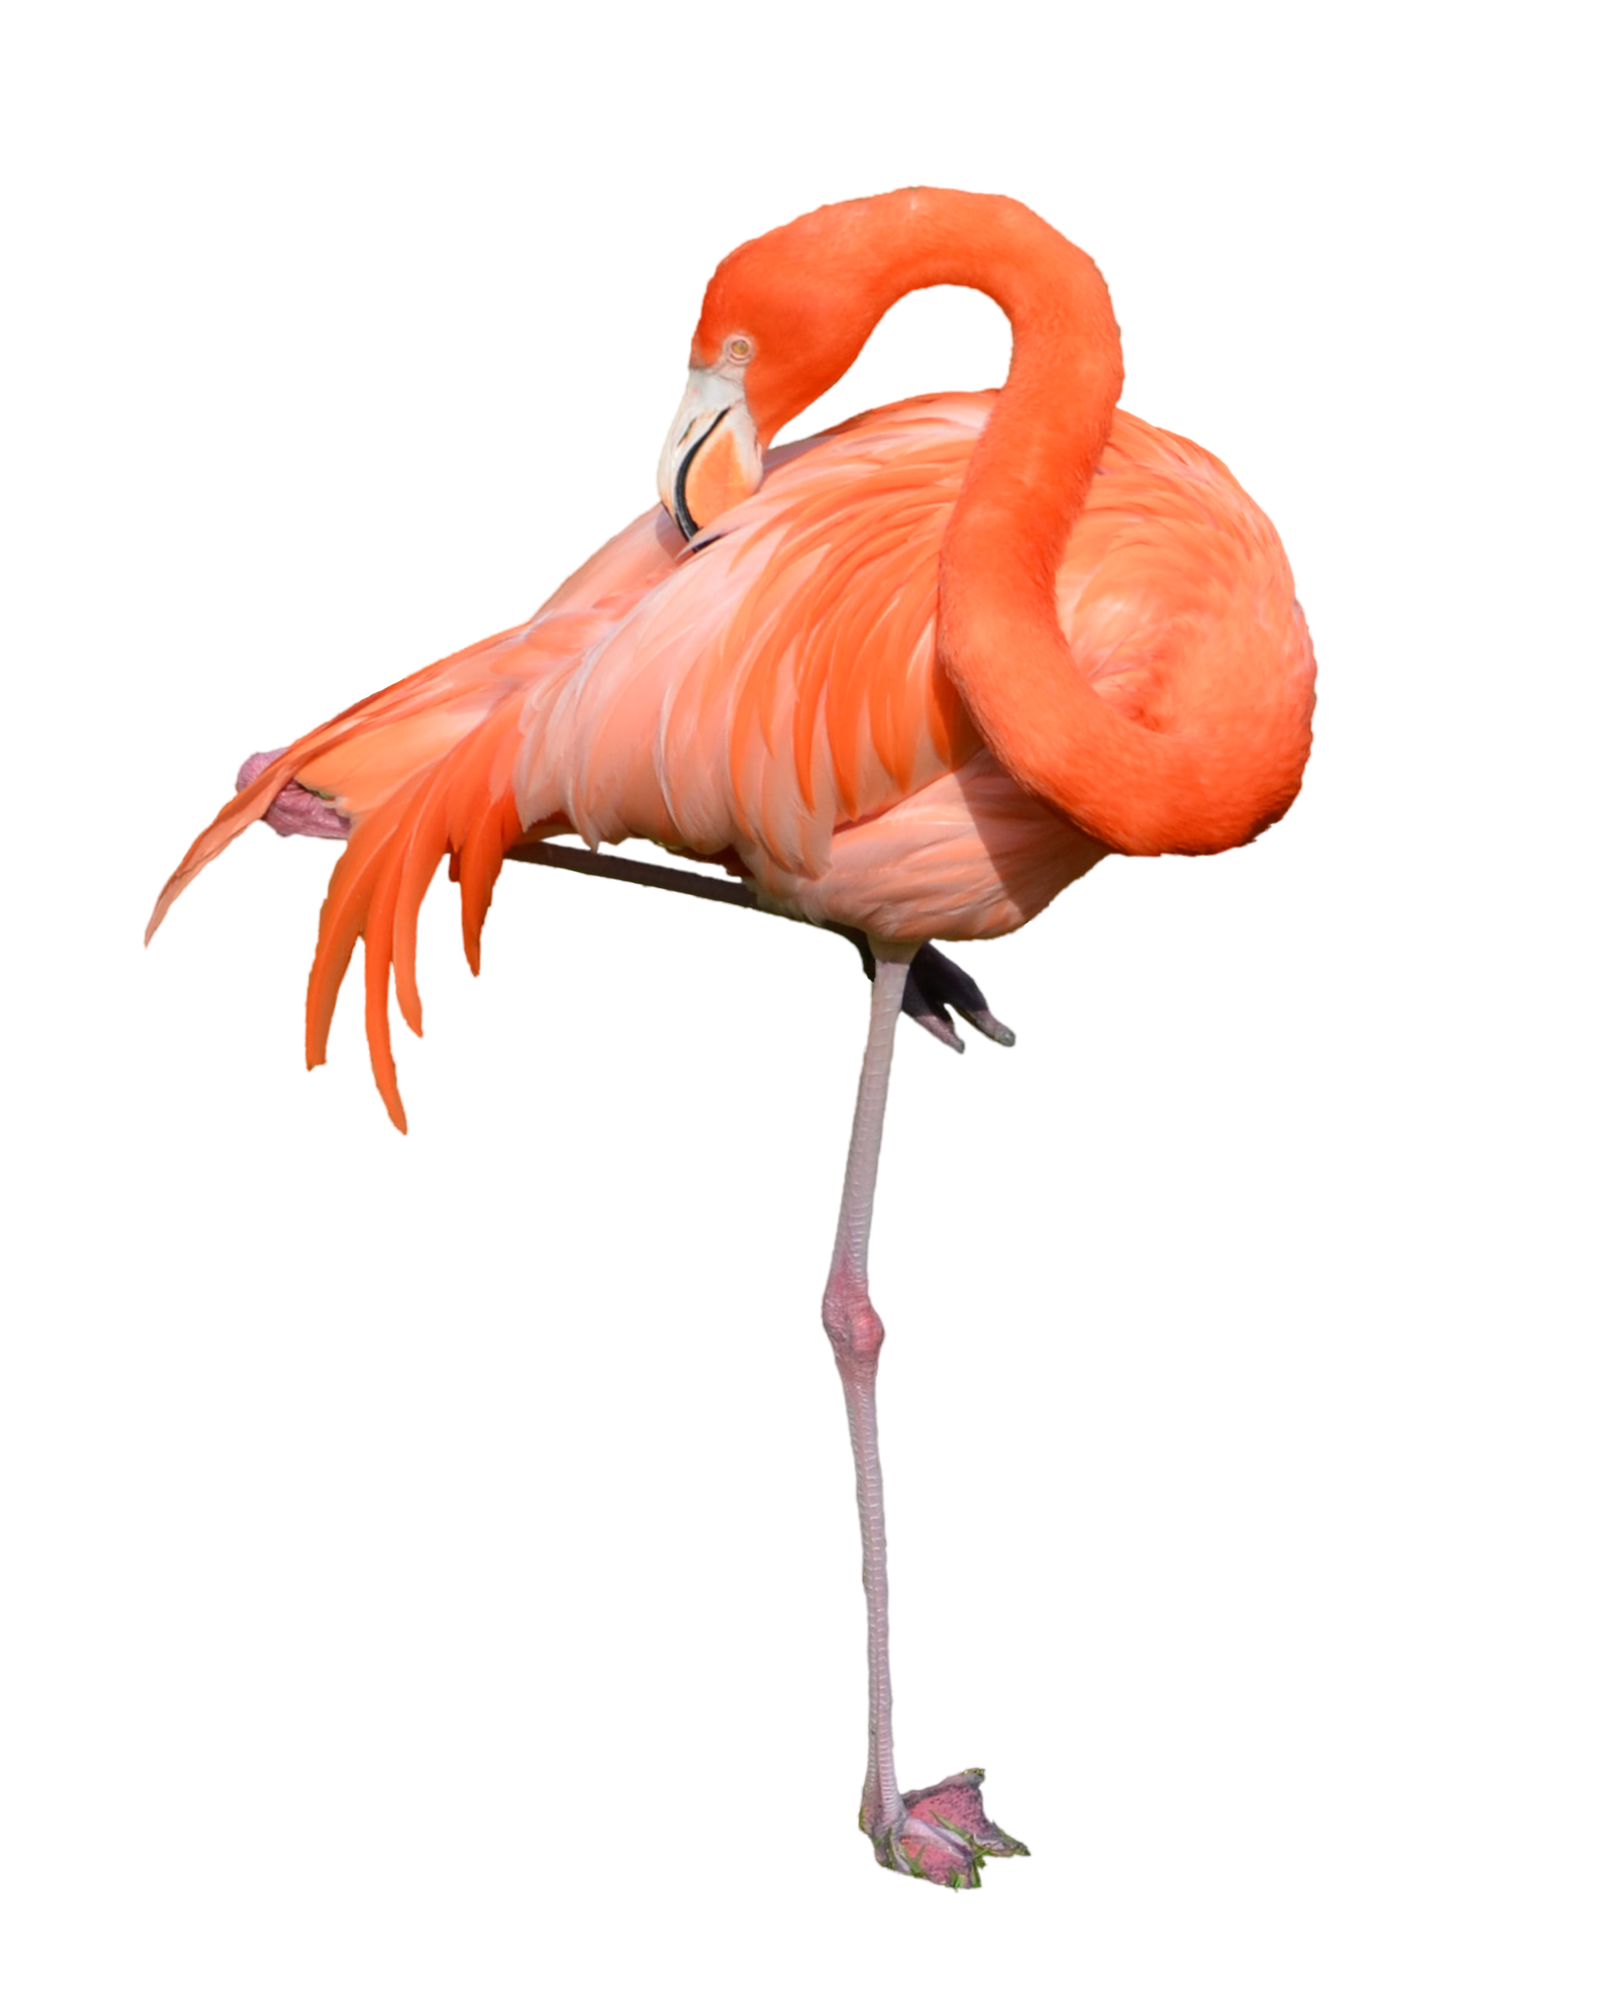 Png images free download. Foot clipart flamingo